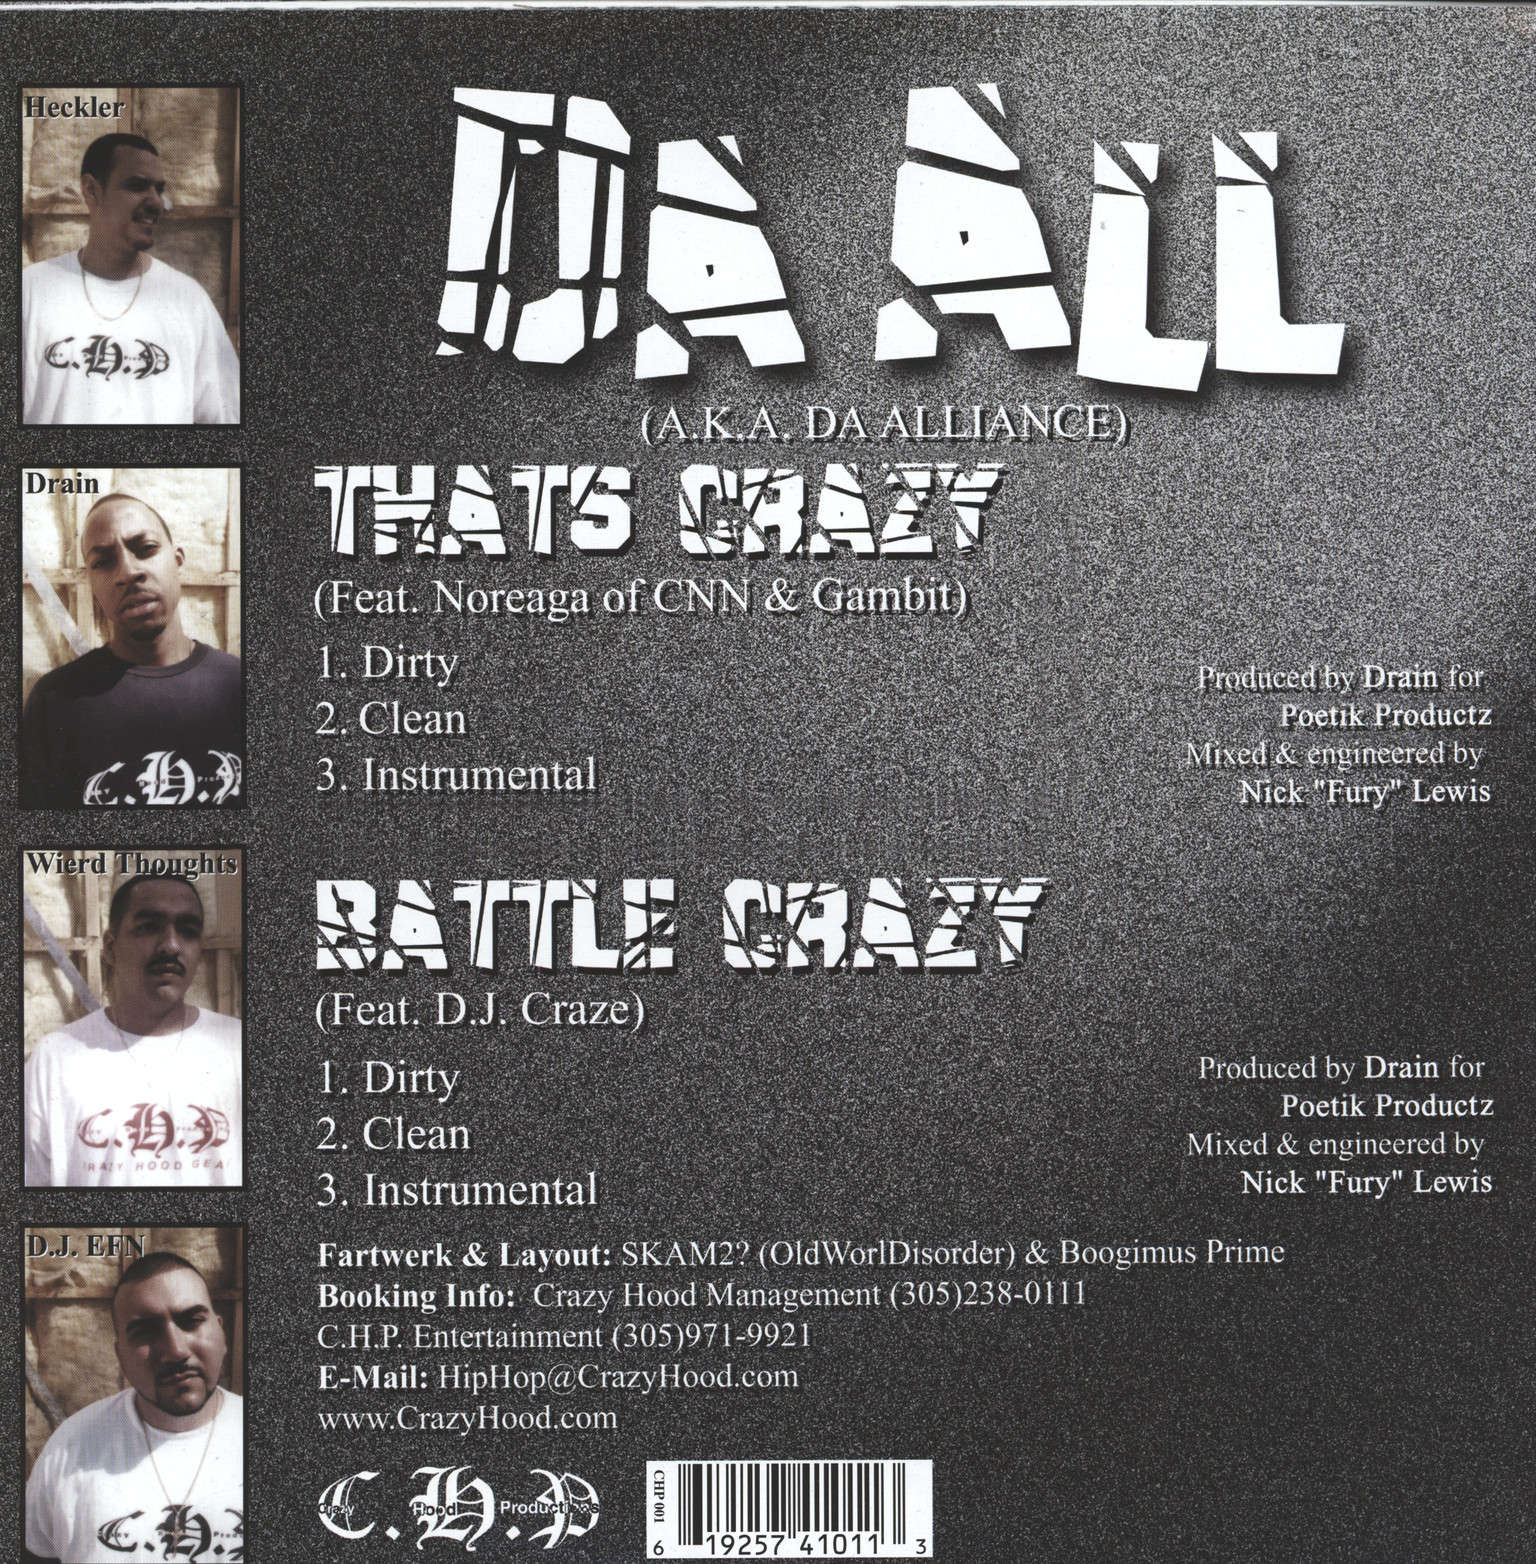 "Da All (Da Alliance): That's Crazy / Battle Crazy, 12"" Maxi Single (Vinyl)"